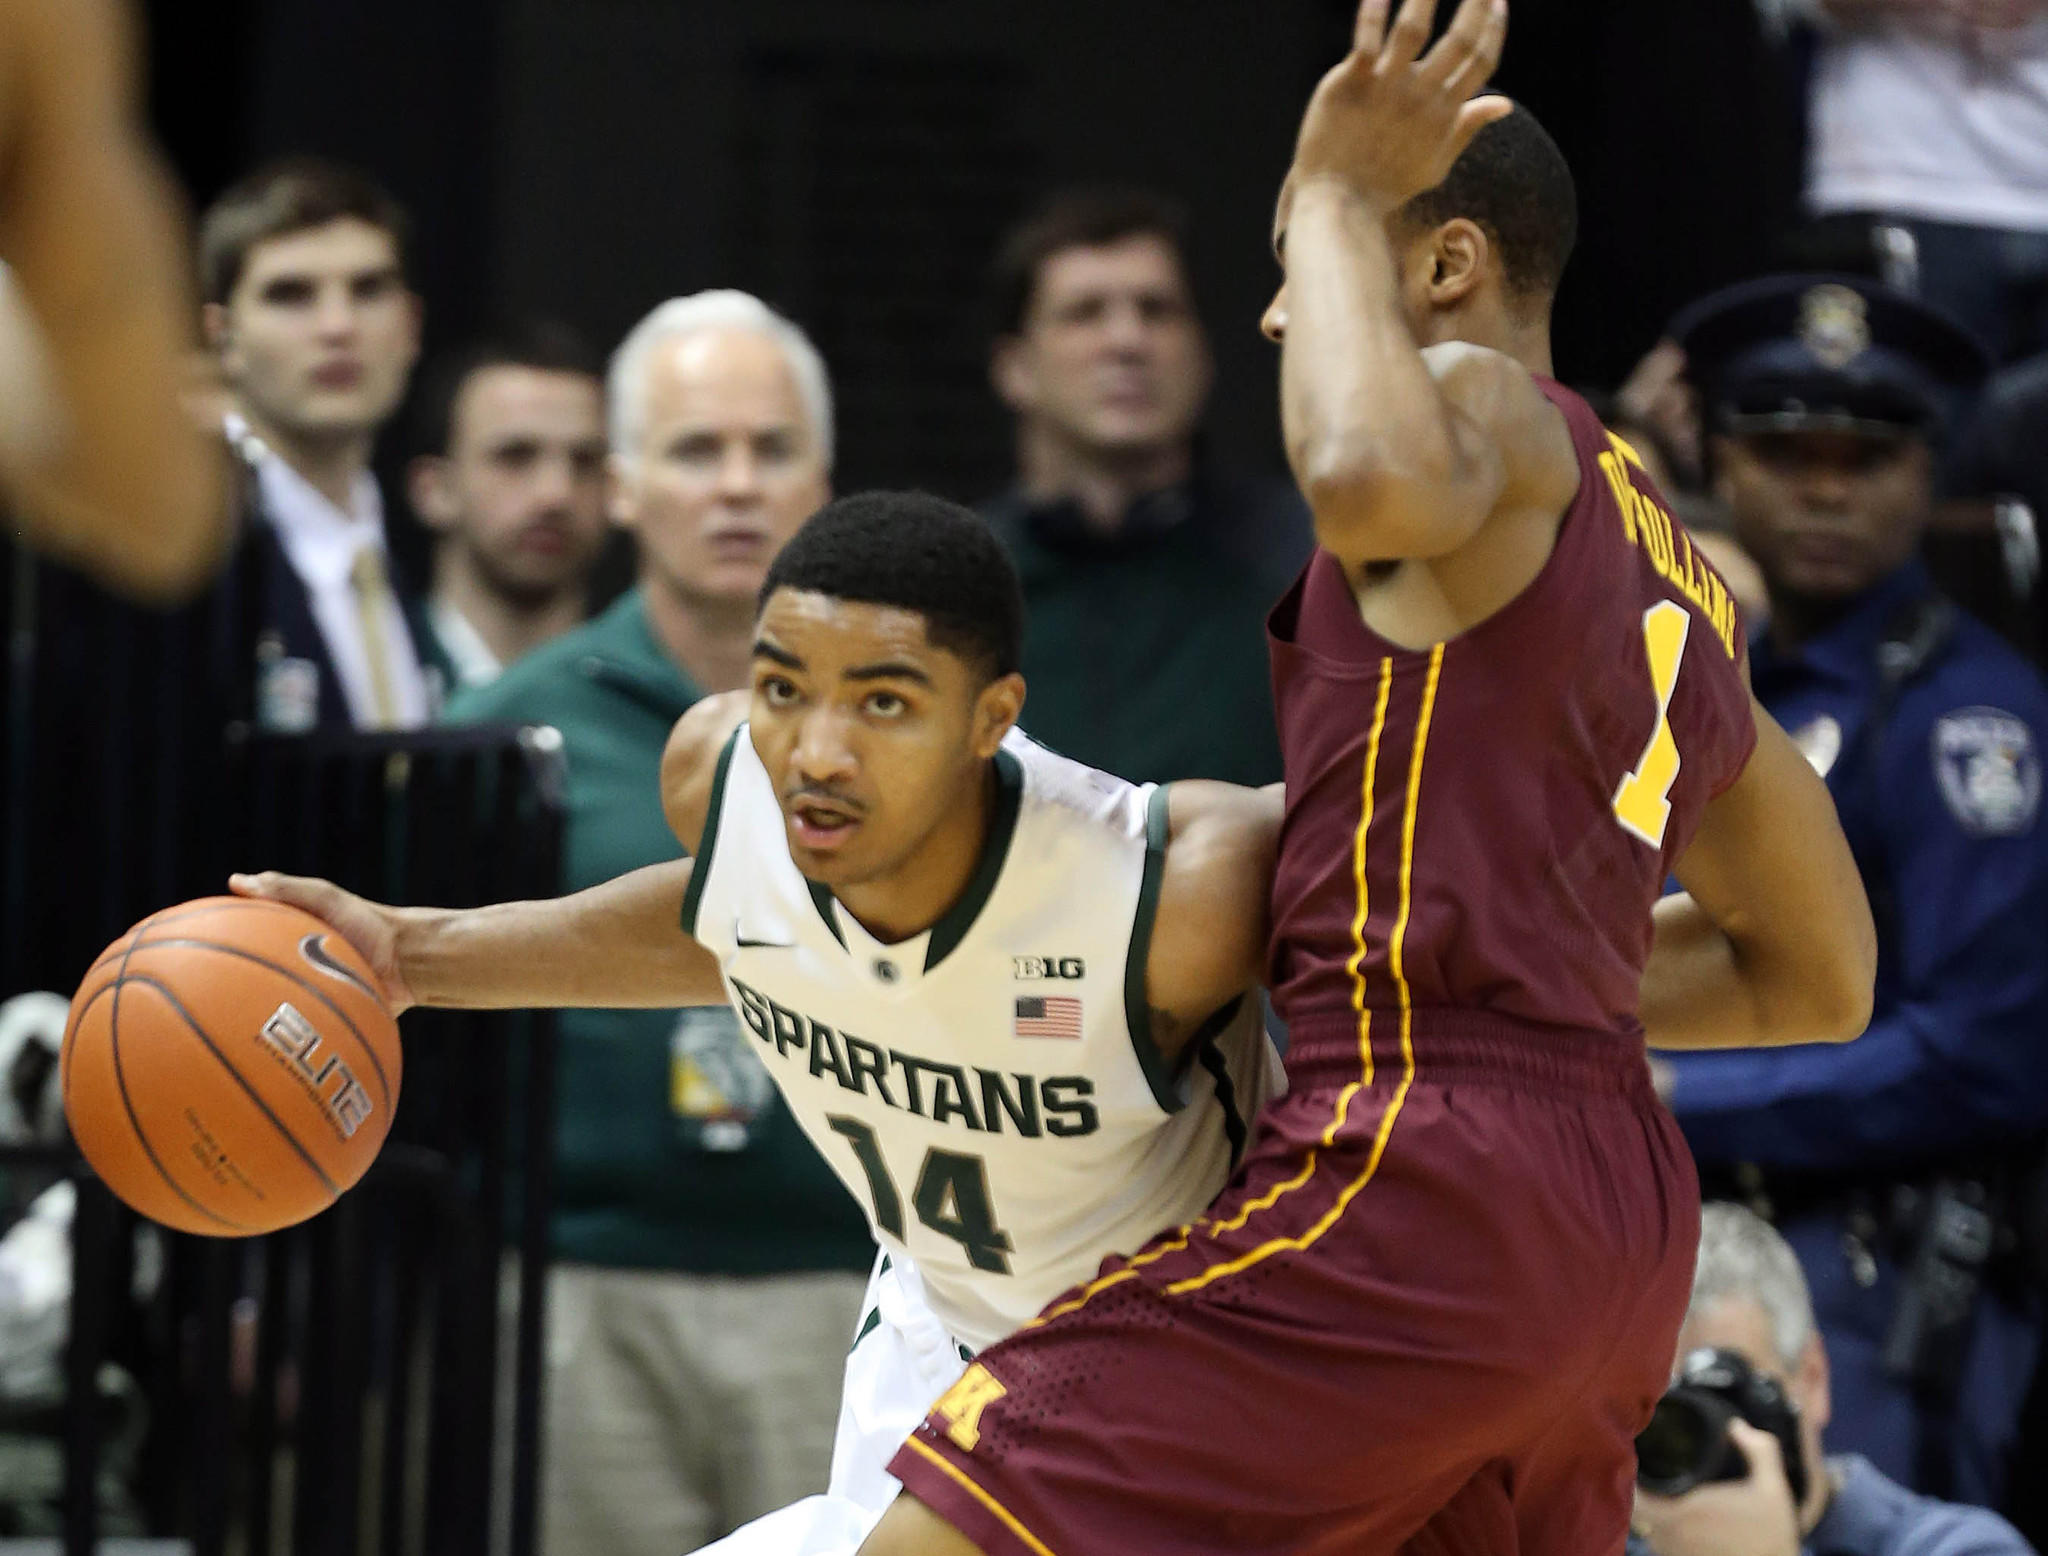 Michigan State Spartans guard Gary Harris (14) brings the ball up court against Minnesota Golden Gophers guard Andre Hollins (1).